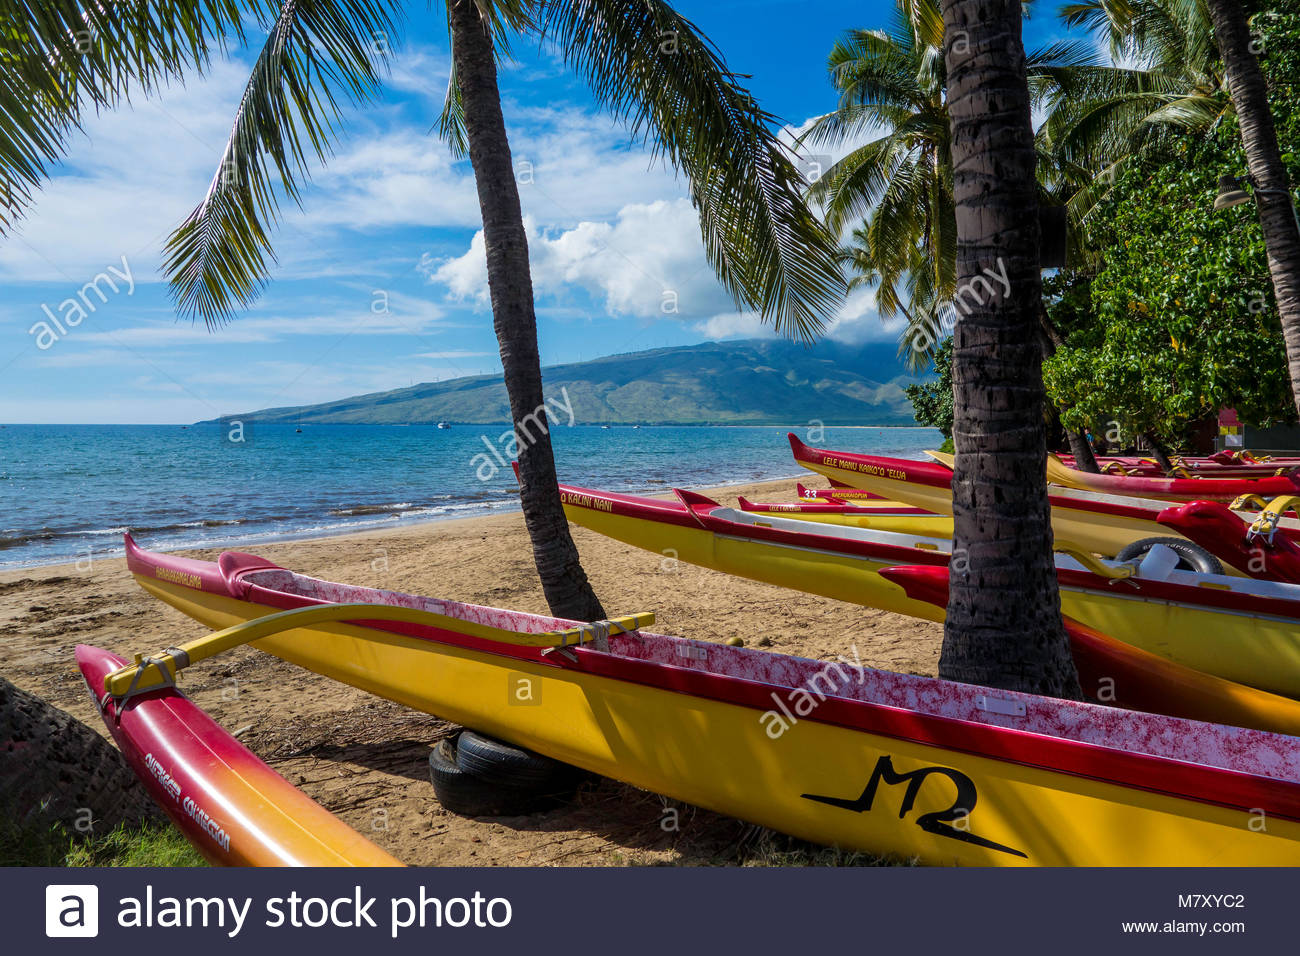 Outrigger canoes on Sugar Beach at the Kihei Canoe Club in Kihei on the island of Maui in the State of Hawaii USA Stock Photo